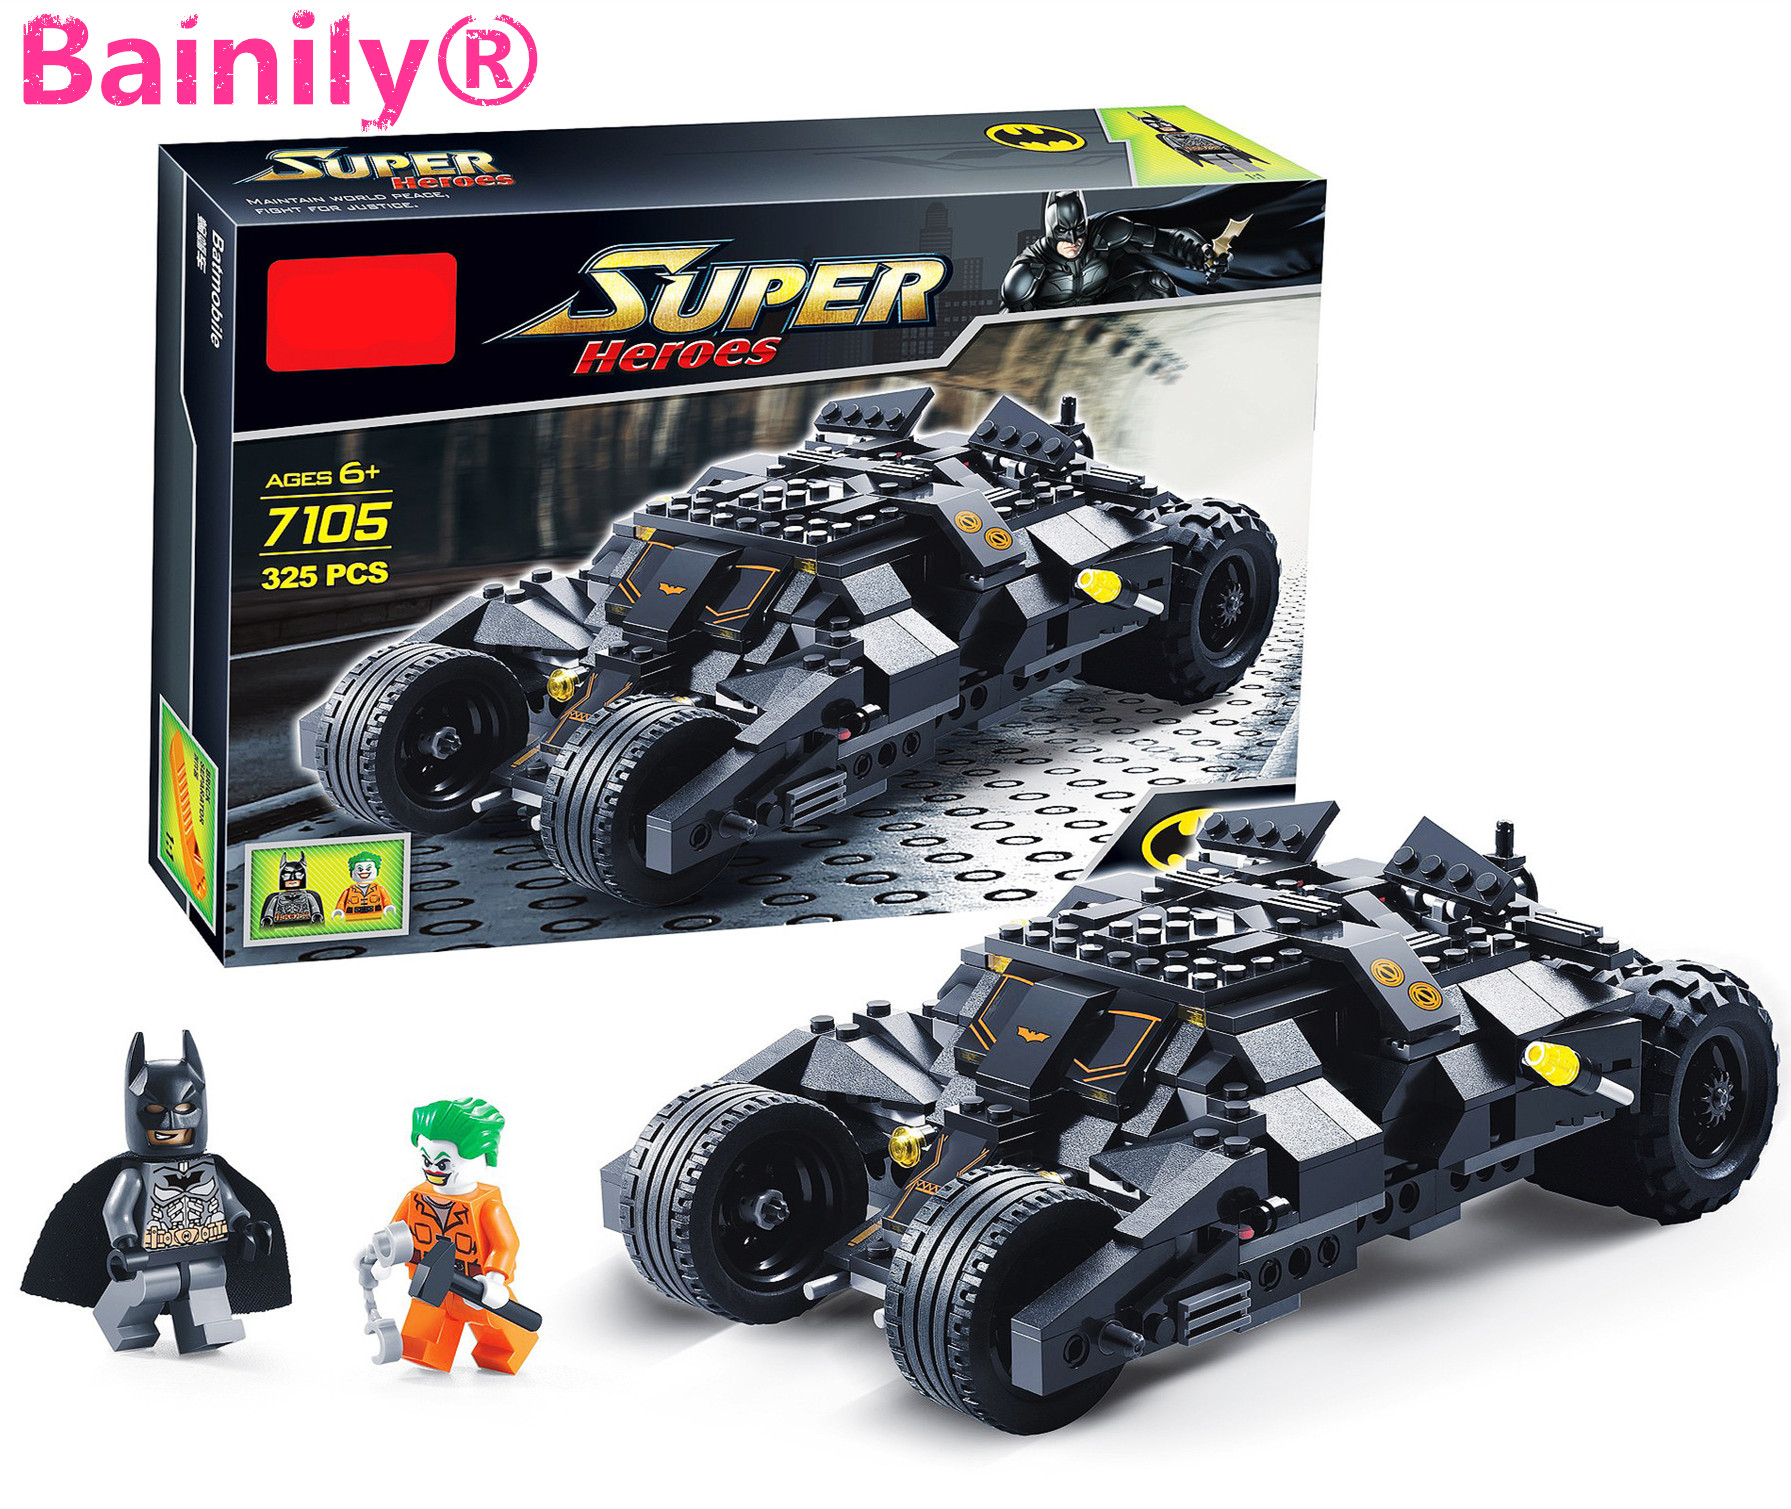 Bainily Super Heroe Batman Race Truck font b Car b font Model Technic Building Block